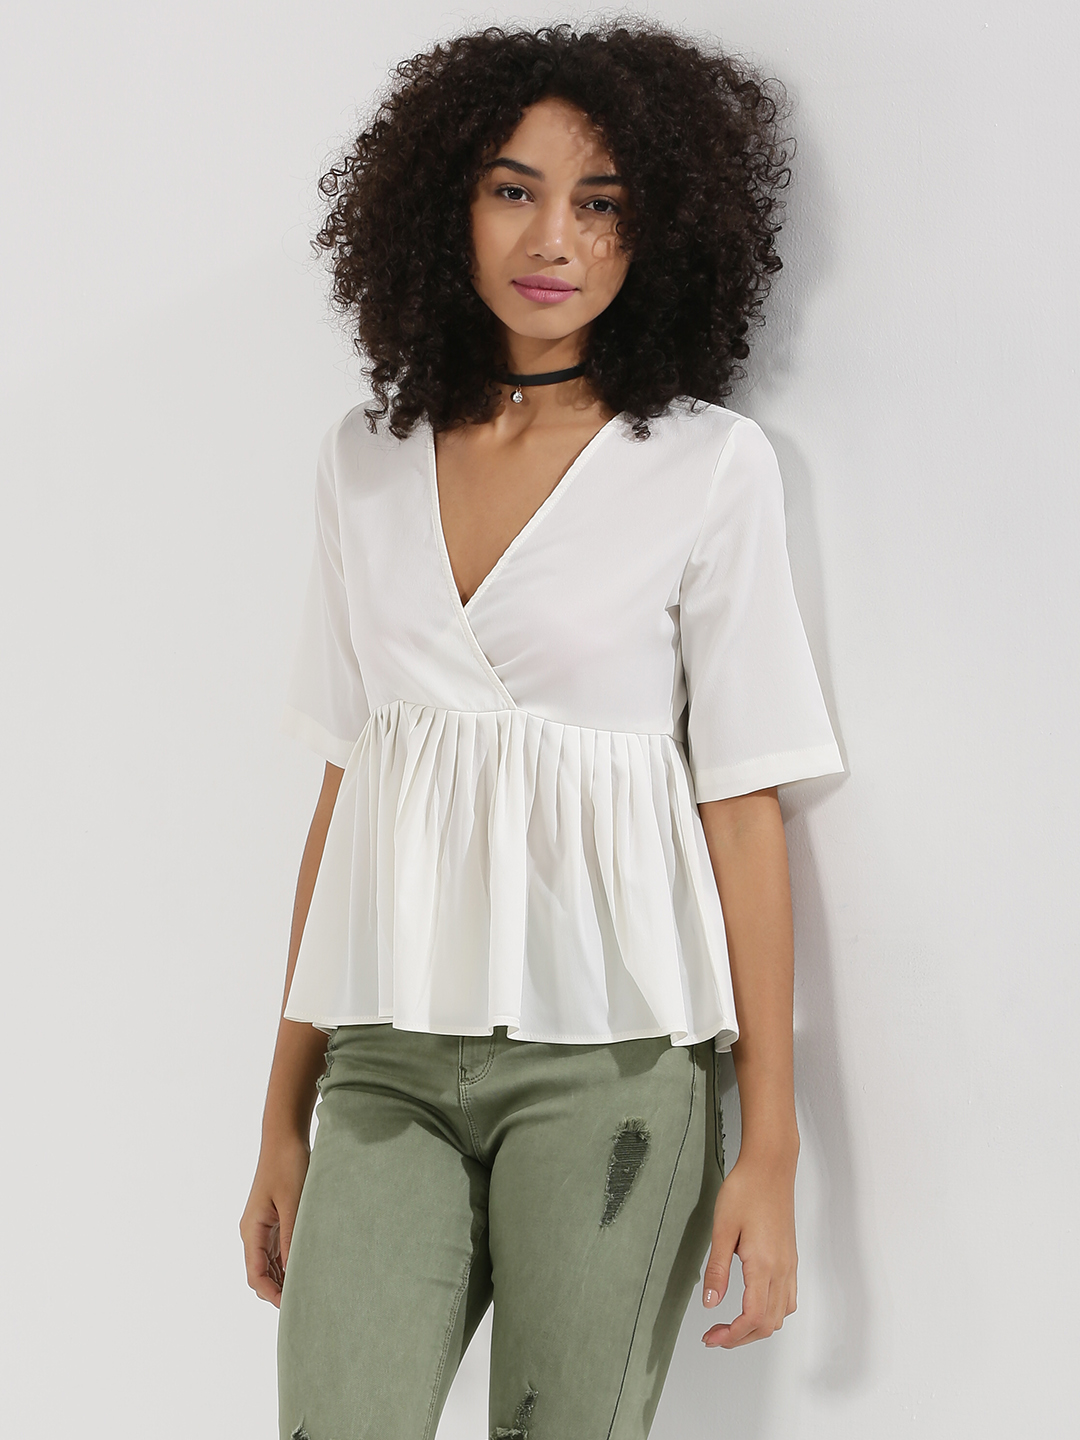 Blue Saint White Wrap Top With Tie Up Detail 1